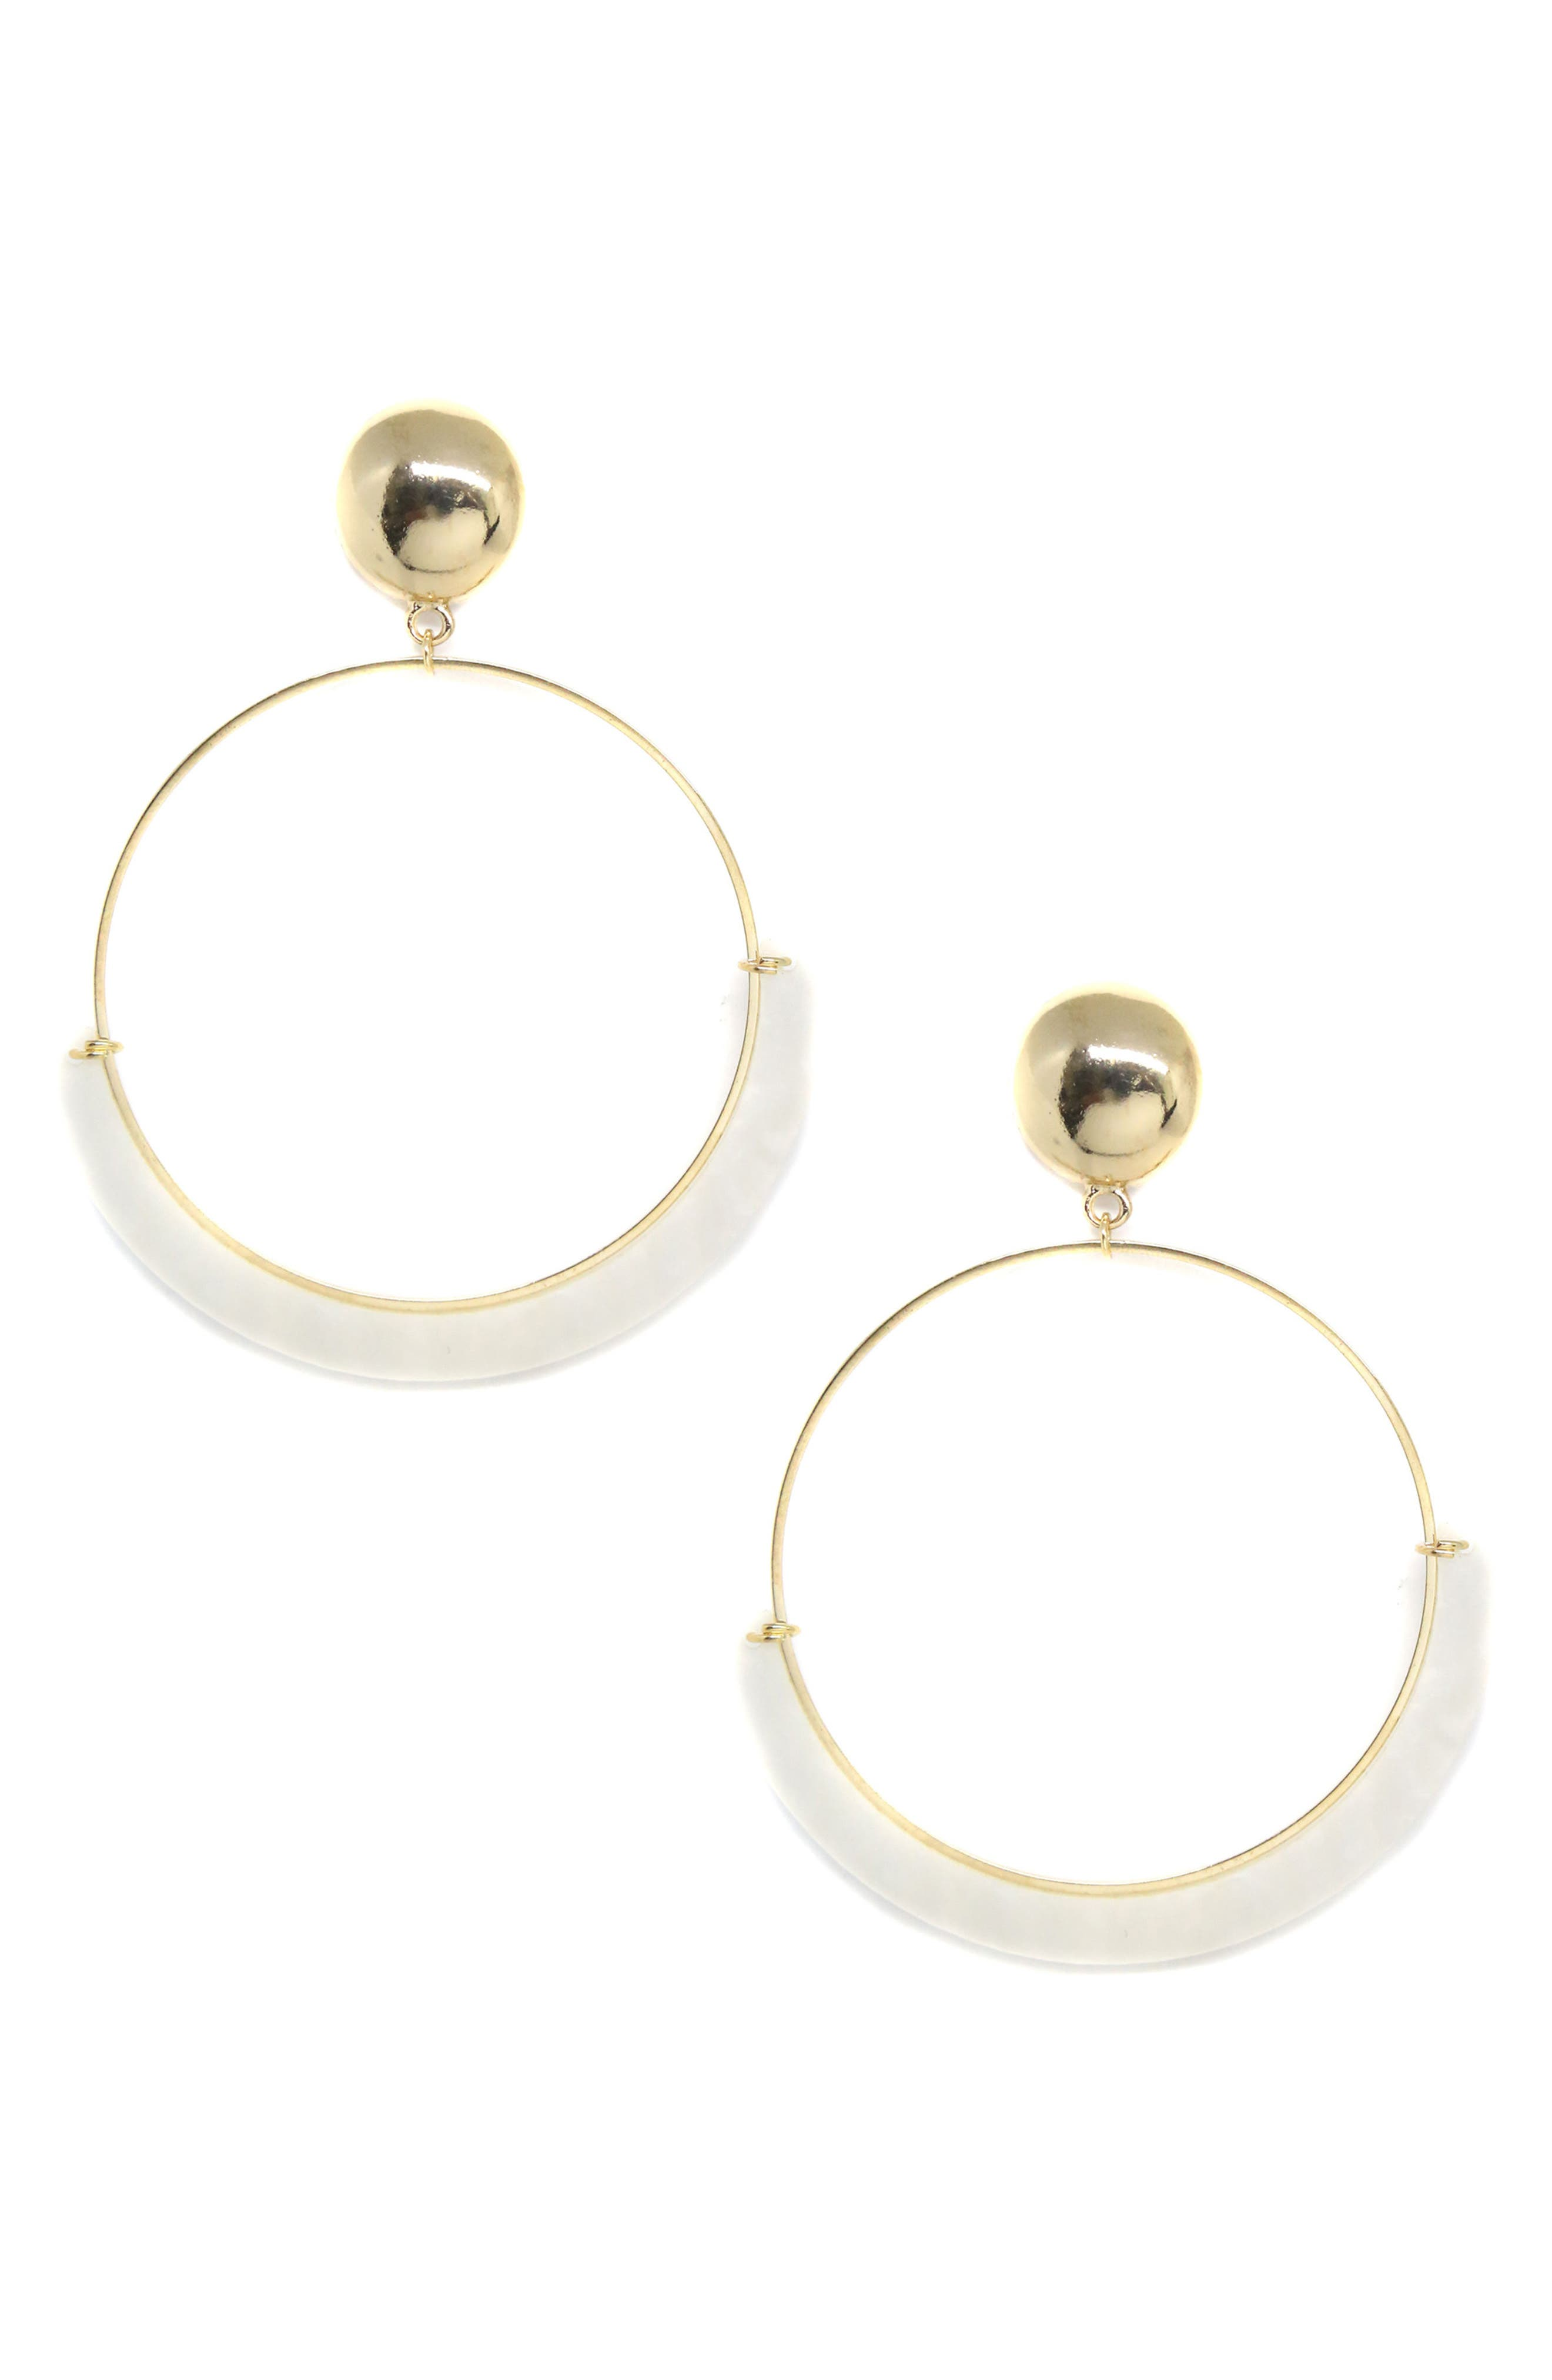 Gold Wire & Resin Hoop Earrings,                         Main,                         color, Cream/Gold